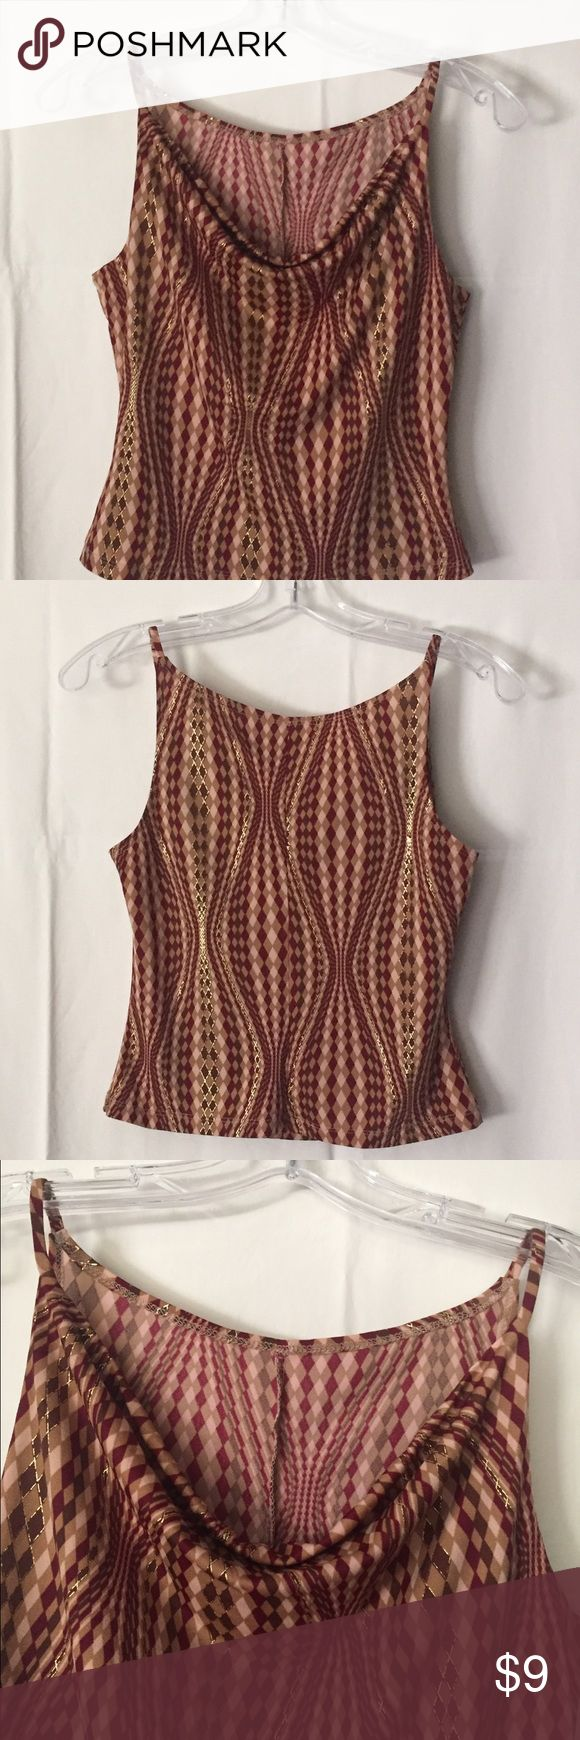 "Spaghetti strap tank with a drape neck. Spaghetti strap tank with a drape neck. Never worn. All tags missing, so, I have no brand, size or material content. Assuming it's a medium (16"" from seam to seam & 16"" long). Tan, Brown and burgundy with gold-tone detail. Excellent condition. Tops Camisoles"